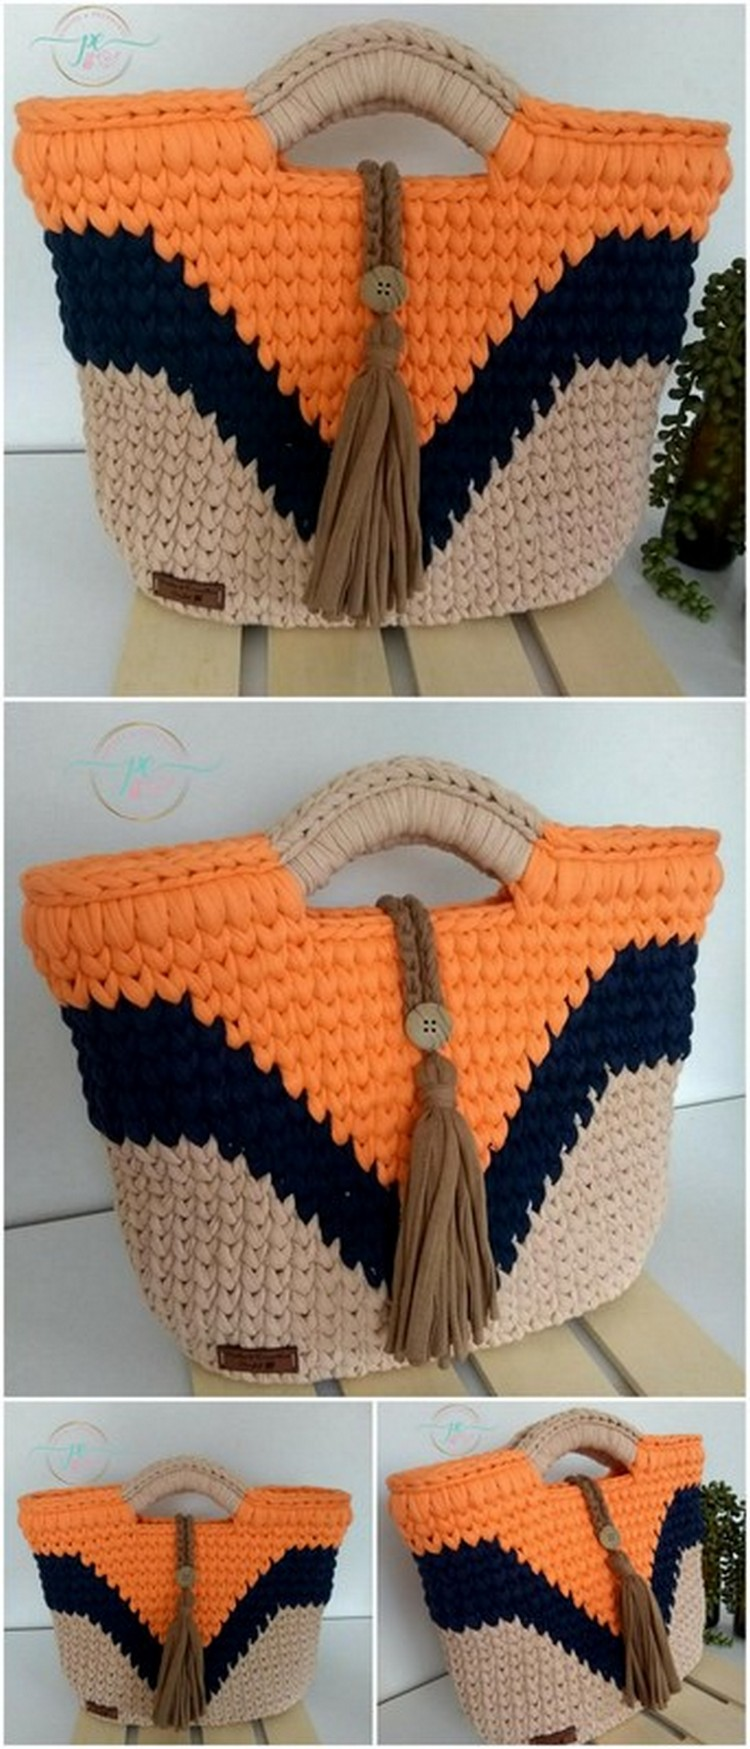 Orange Bag Free Crochet Pattern